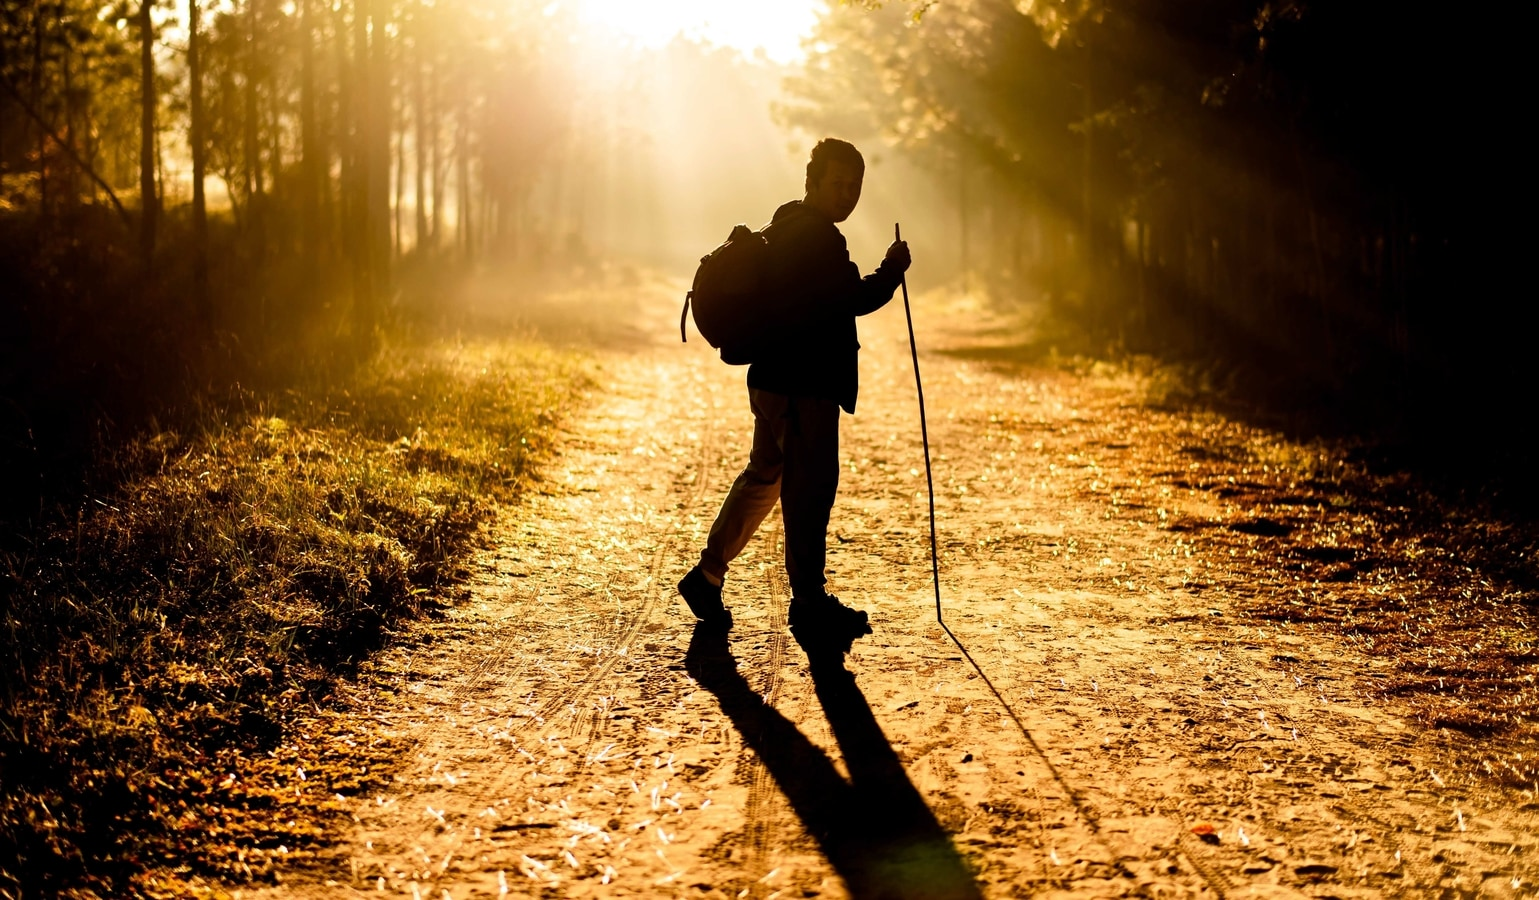 Study shows the benefits of exercise for people with peripheral artery disease